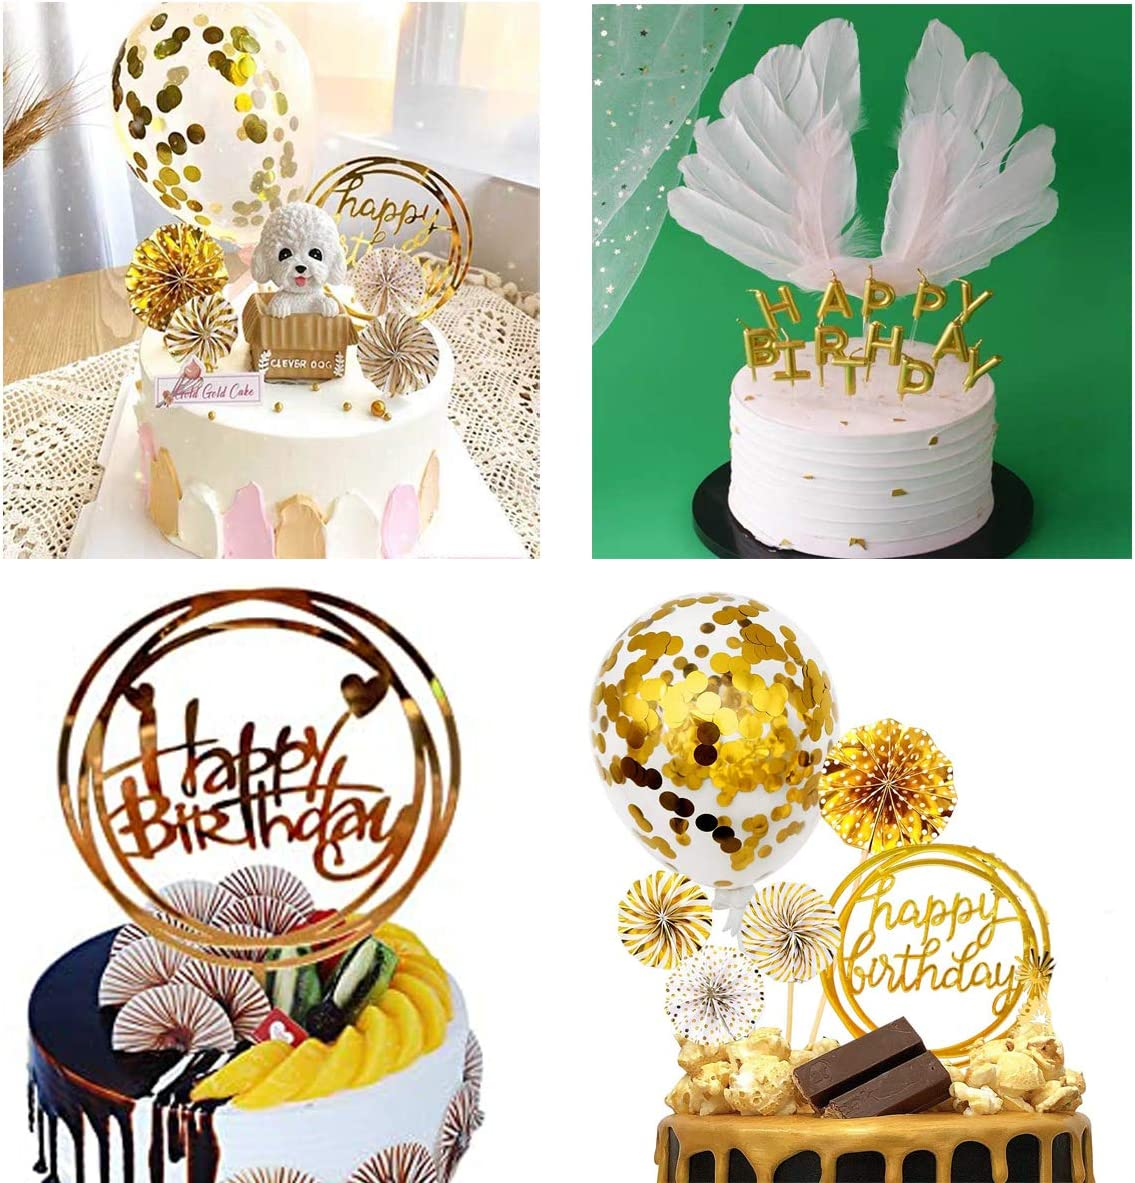 Fantasyon 24 Pcs Happy Birthday Cake Toppers Set Sliver Cake Candles Toppers Confetti Balloon Stars Happy Birthday Cupcake Topper Letters and Fan Cupcake Toppers